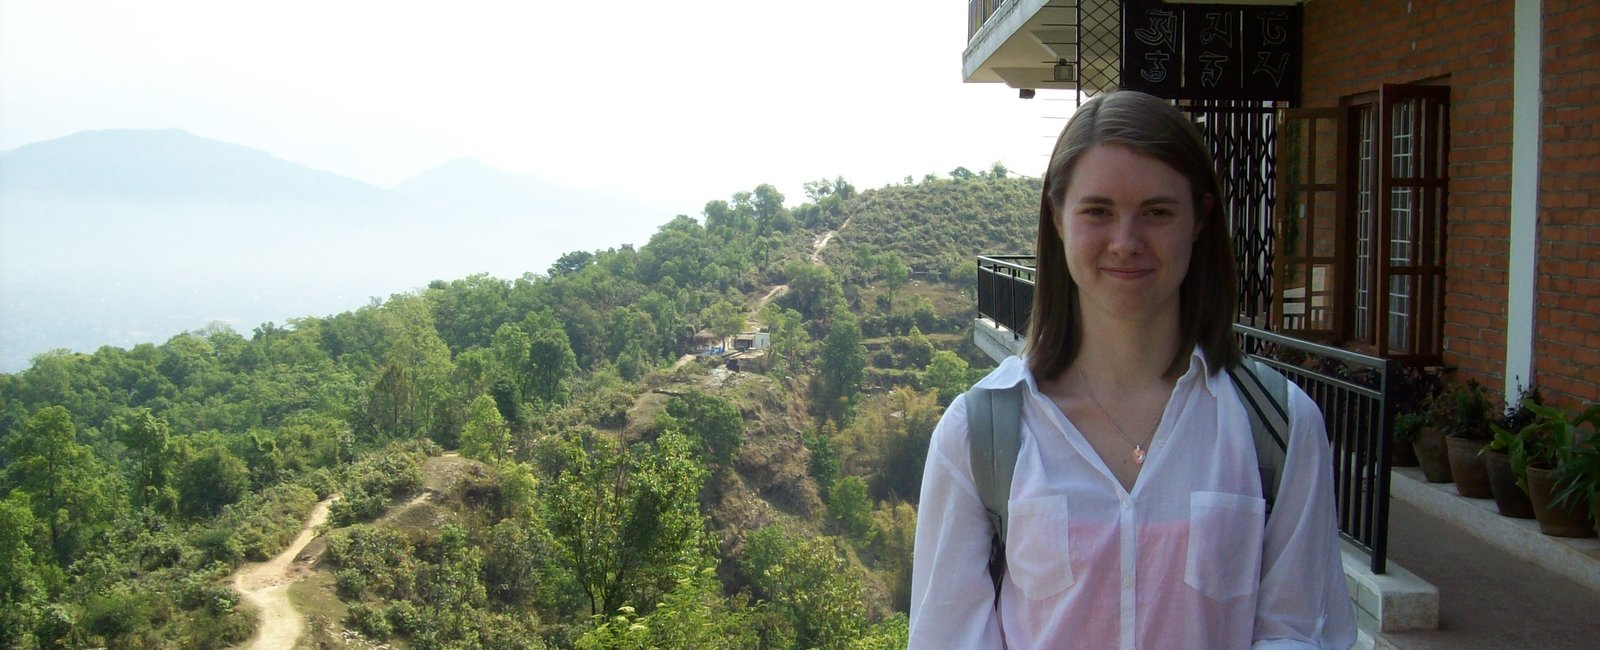 Aileen Selfridge - Physiotherapy Electives in Nepal Pokhara